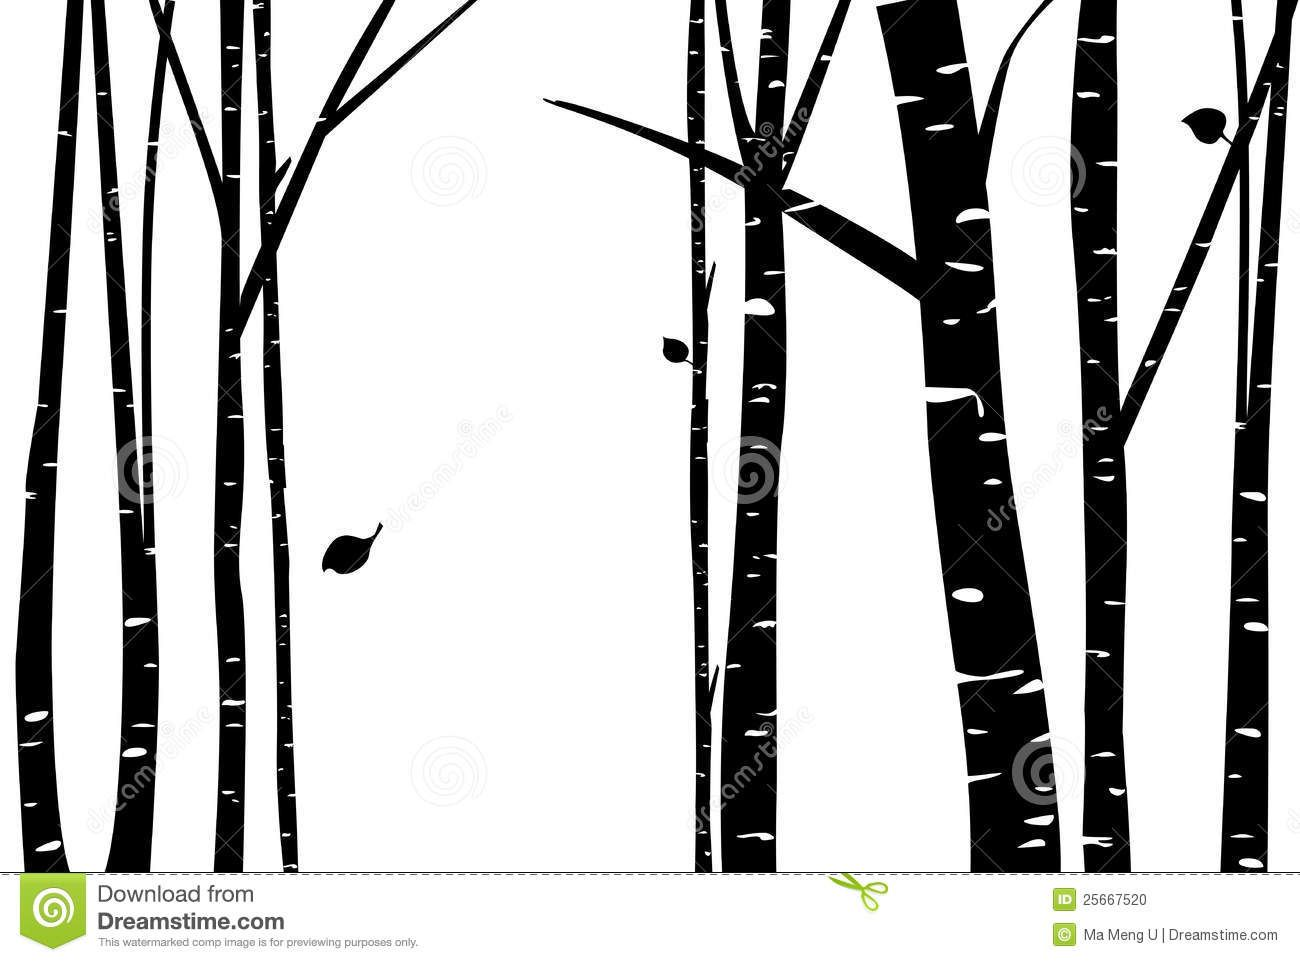 1300x962 Birch Tree Vector Birch Grove With Falling Leaf Silhouette. By